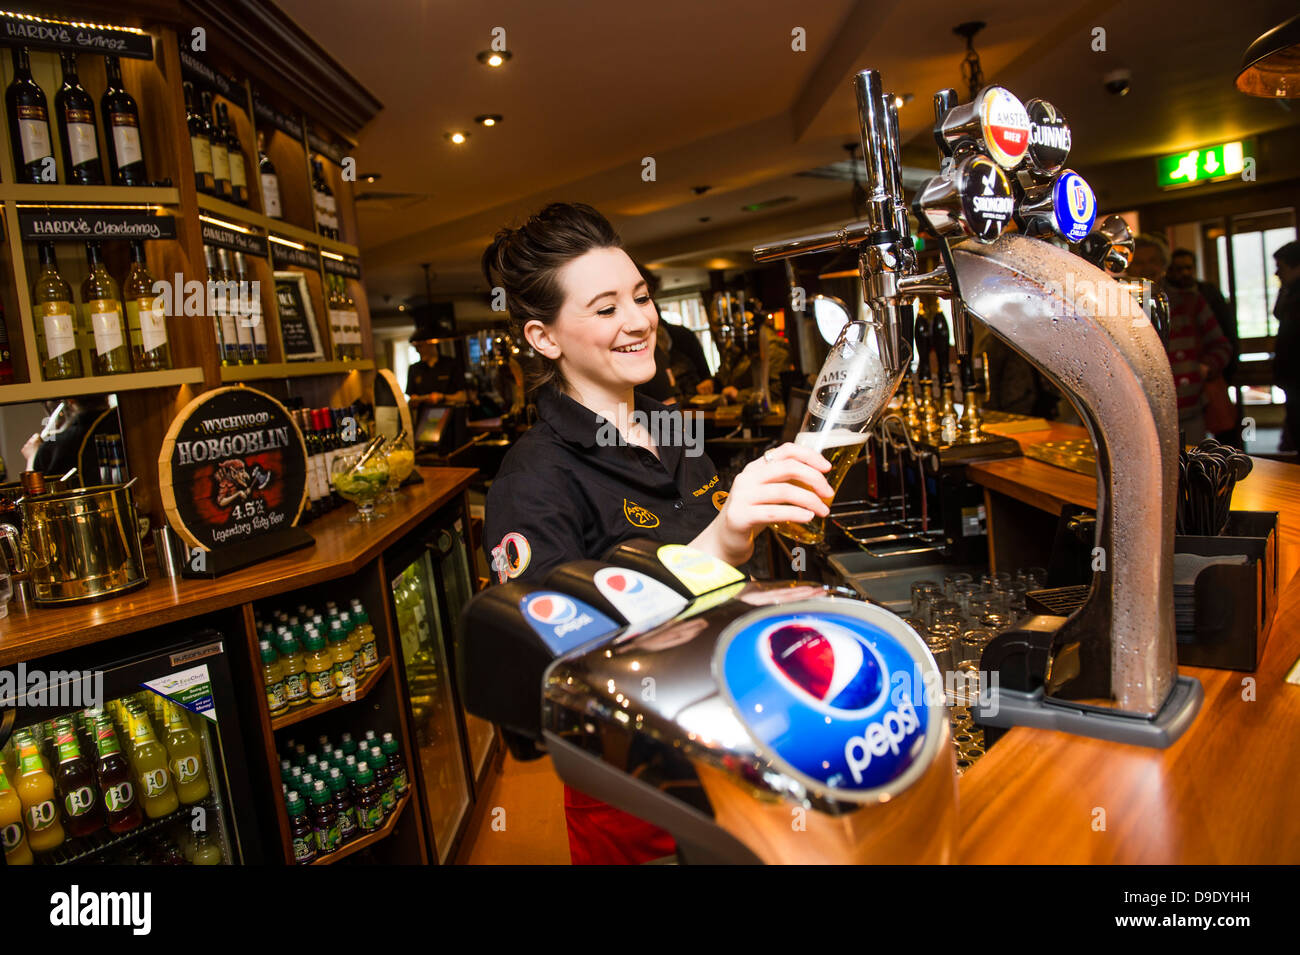 A barmaid working pouring a pint of lager beer in a pub bar UK - Stock Image